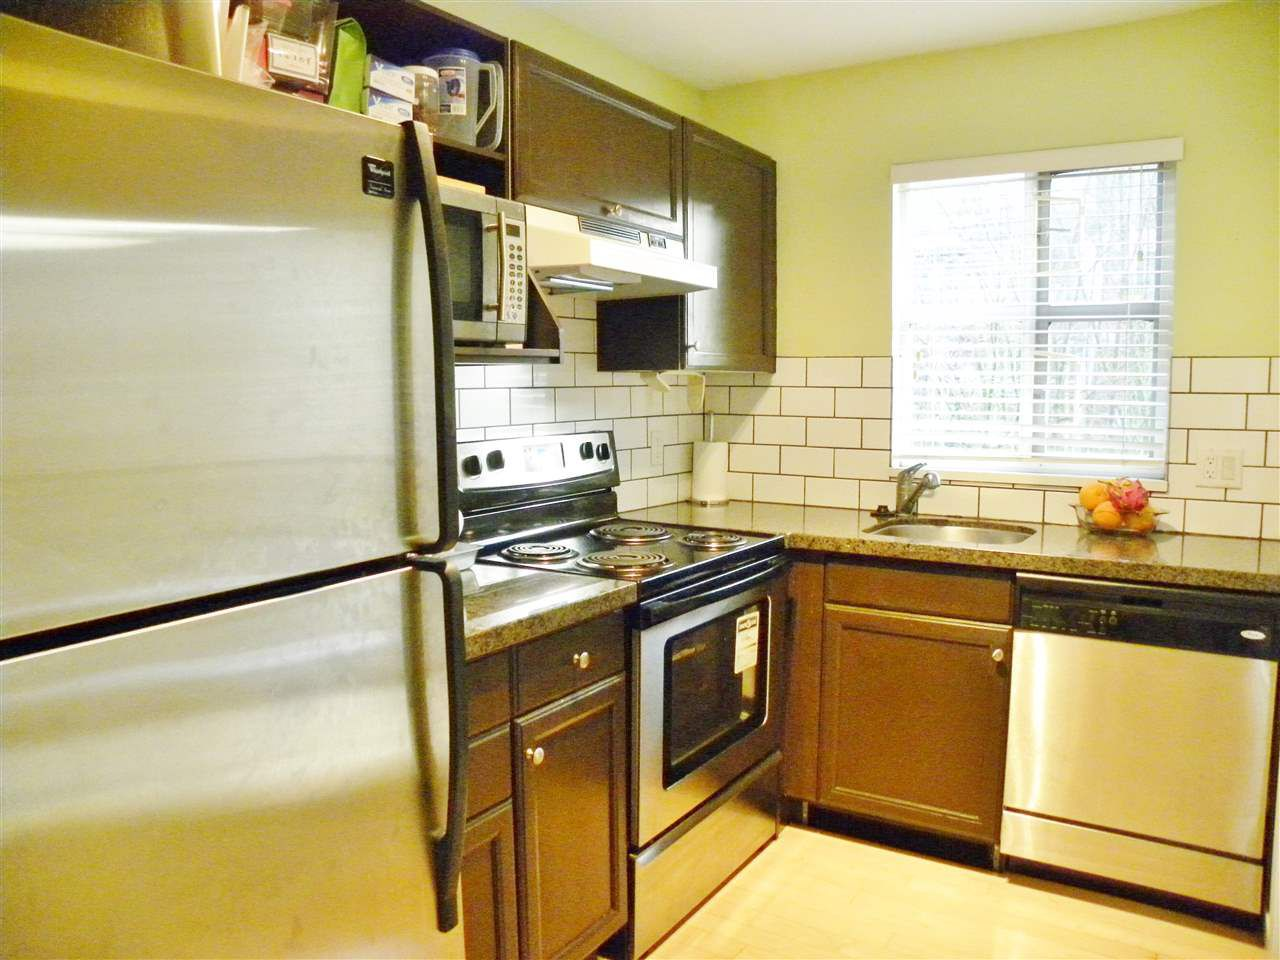 """Main Photo: 205 2285 WELCHER Avenue in Port Coquitlam: Central Pt Coquitlam Condo for sale in """"BISHOP ON THE PARK"""" : MLS®# R2023167"""